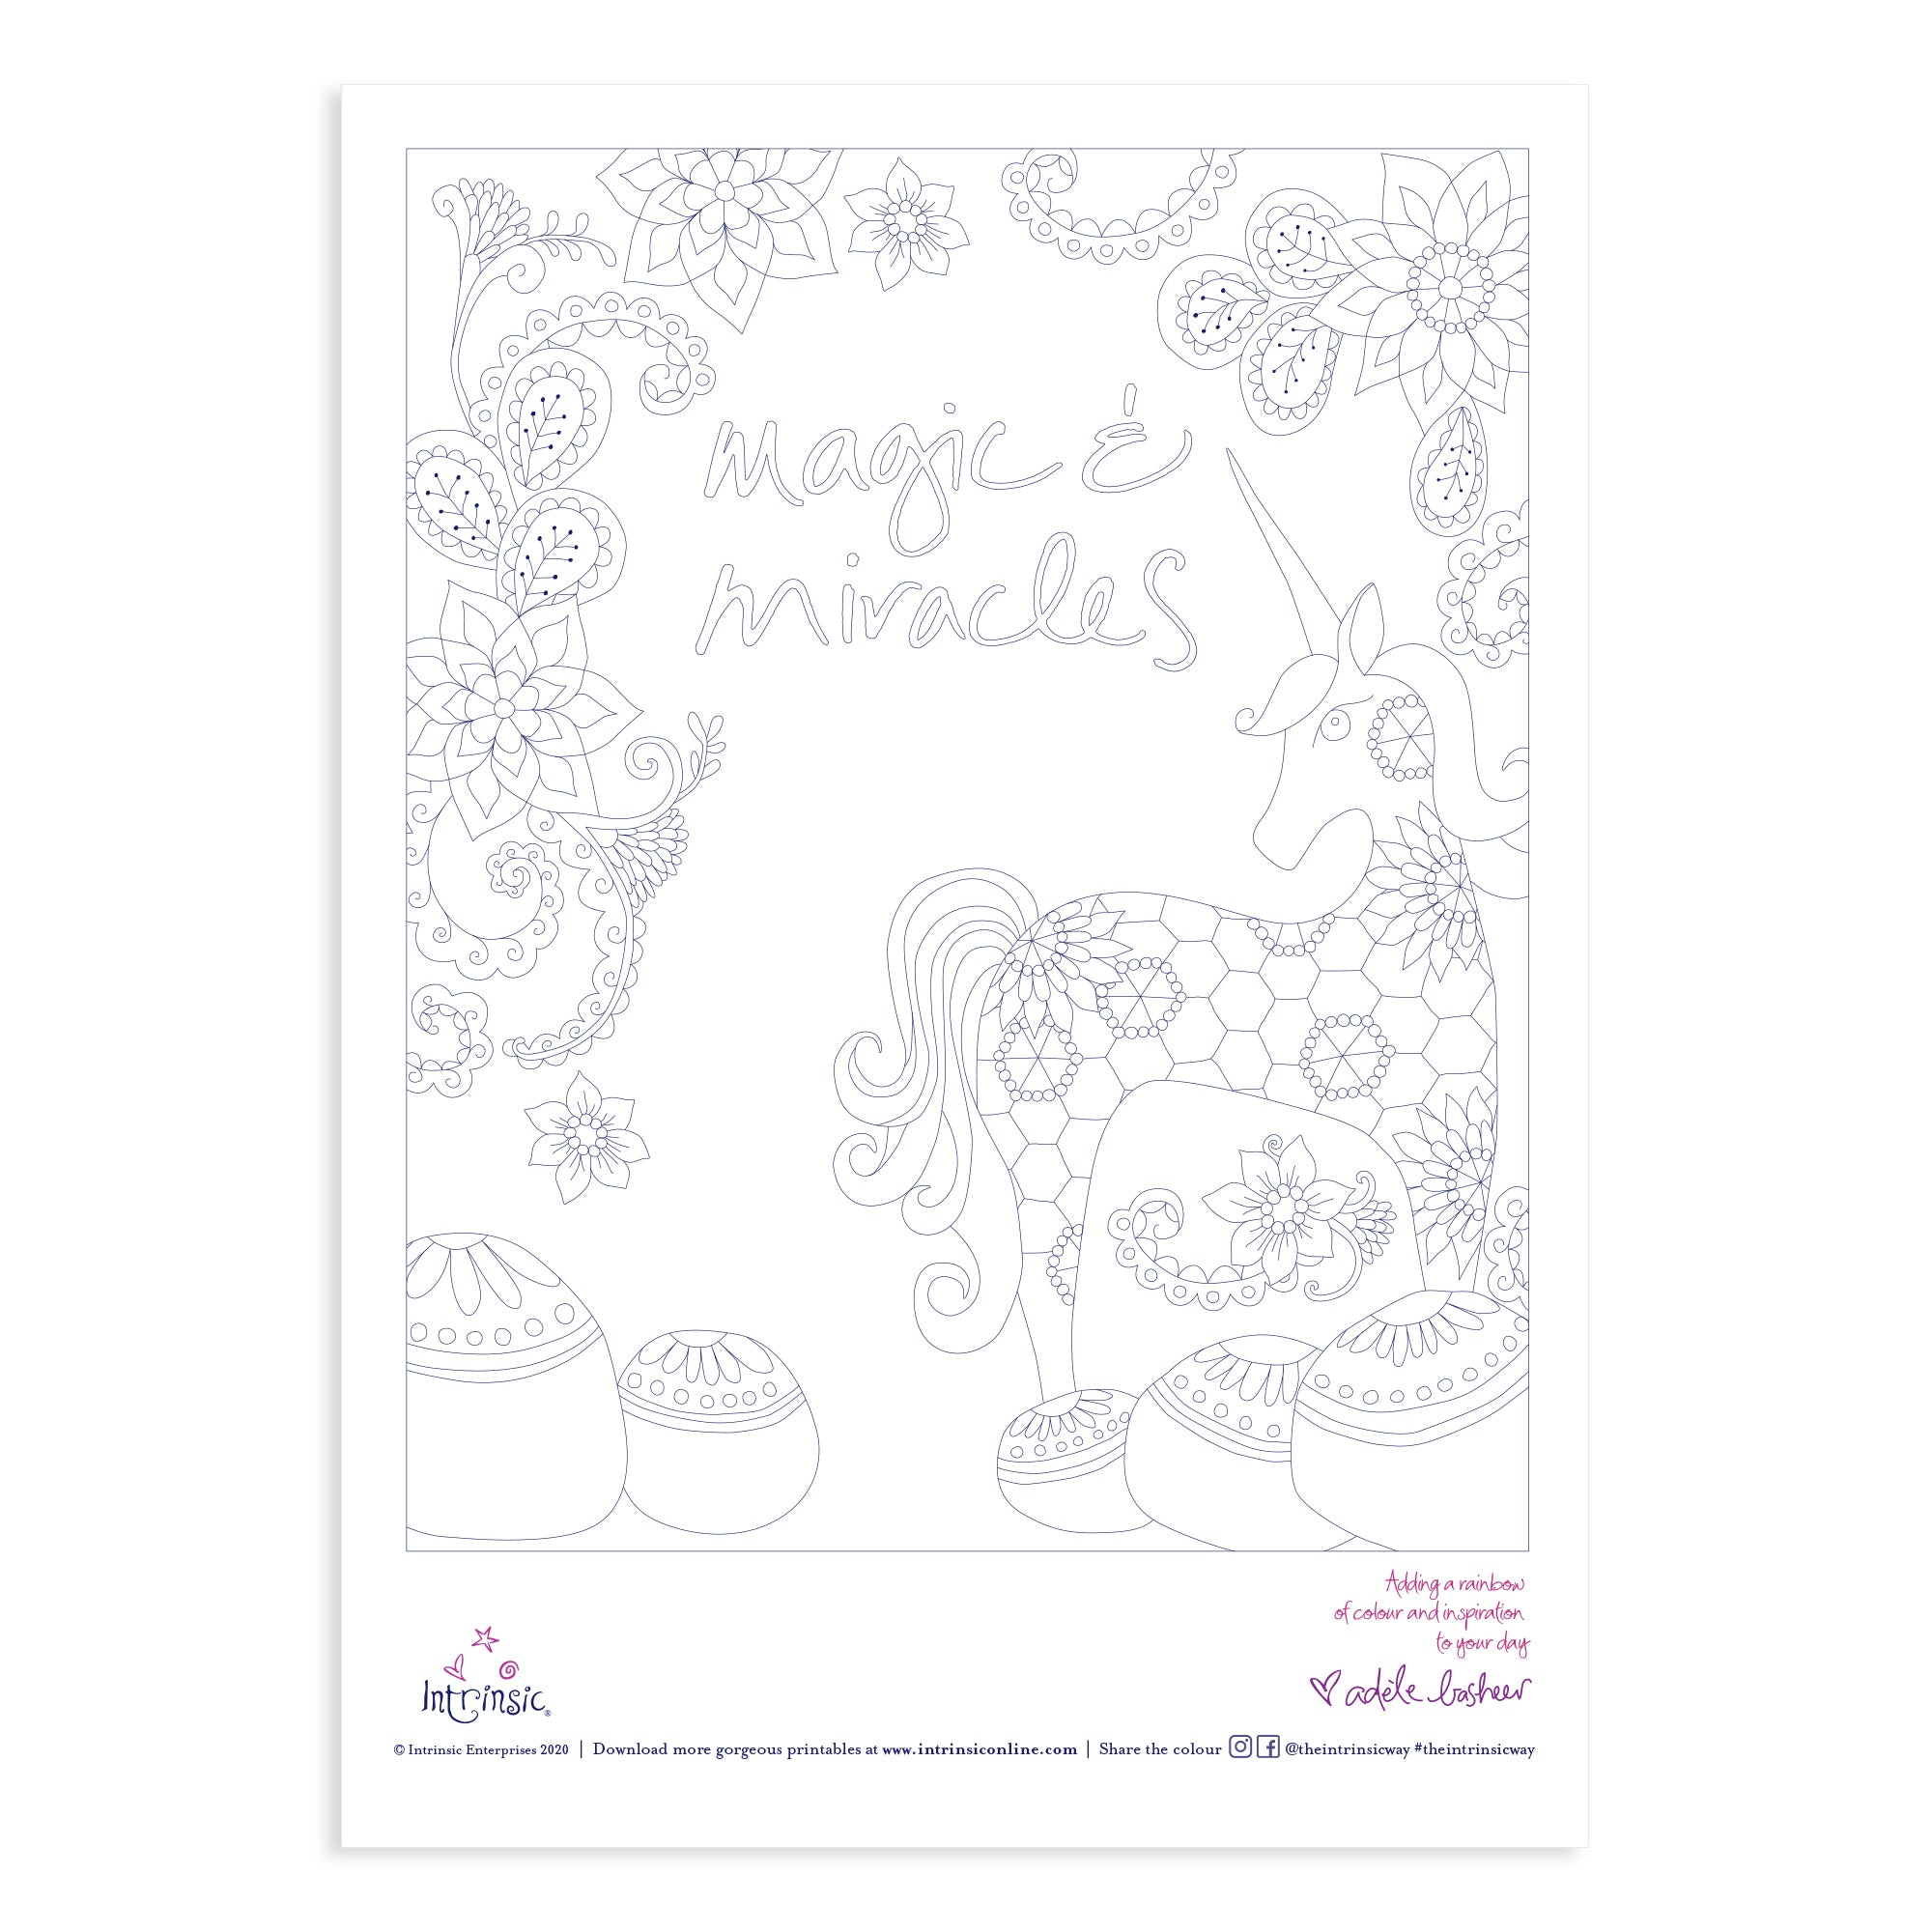 Intrinsic Colouring In Printable #14